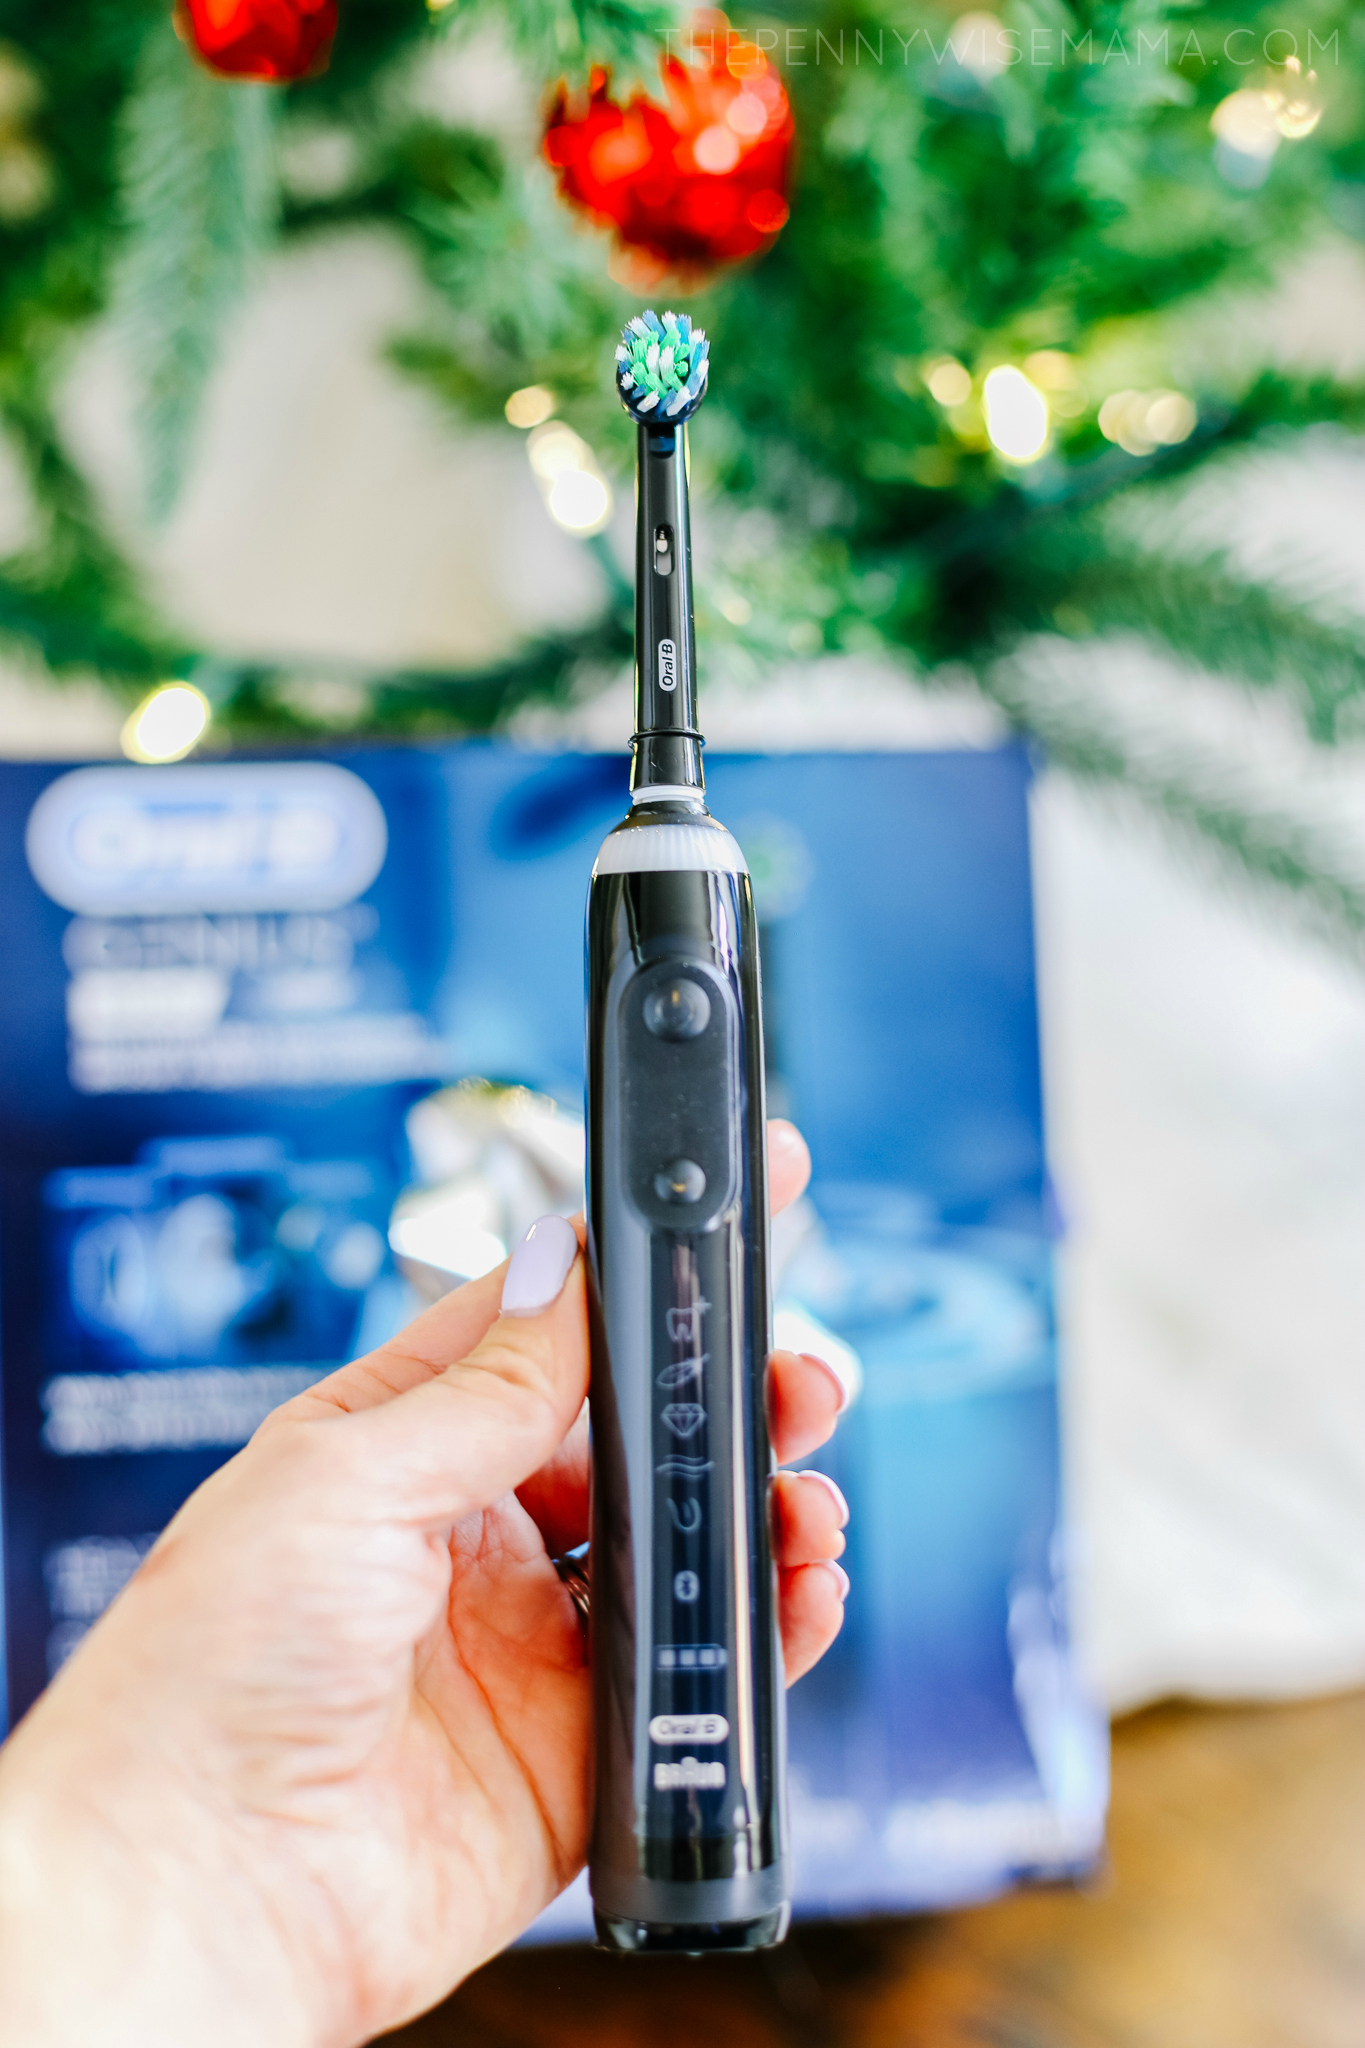 Oral-B 8000 Power Toothbrush